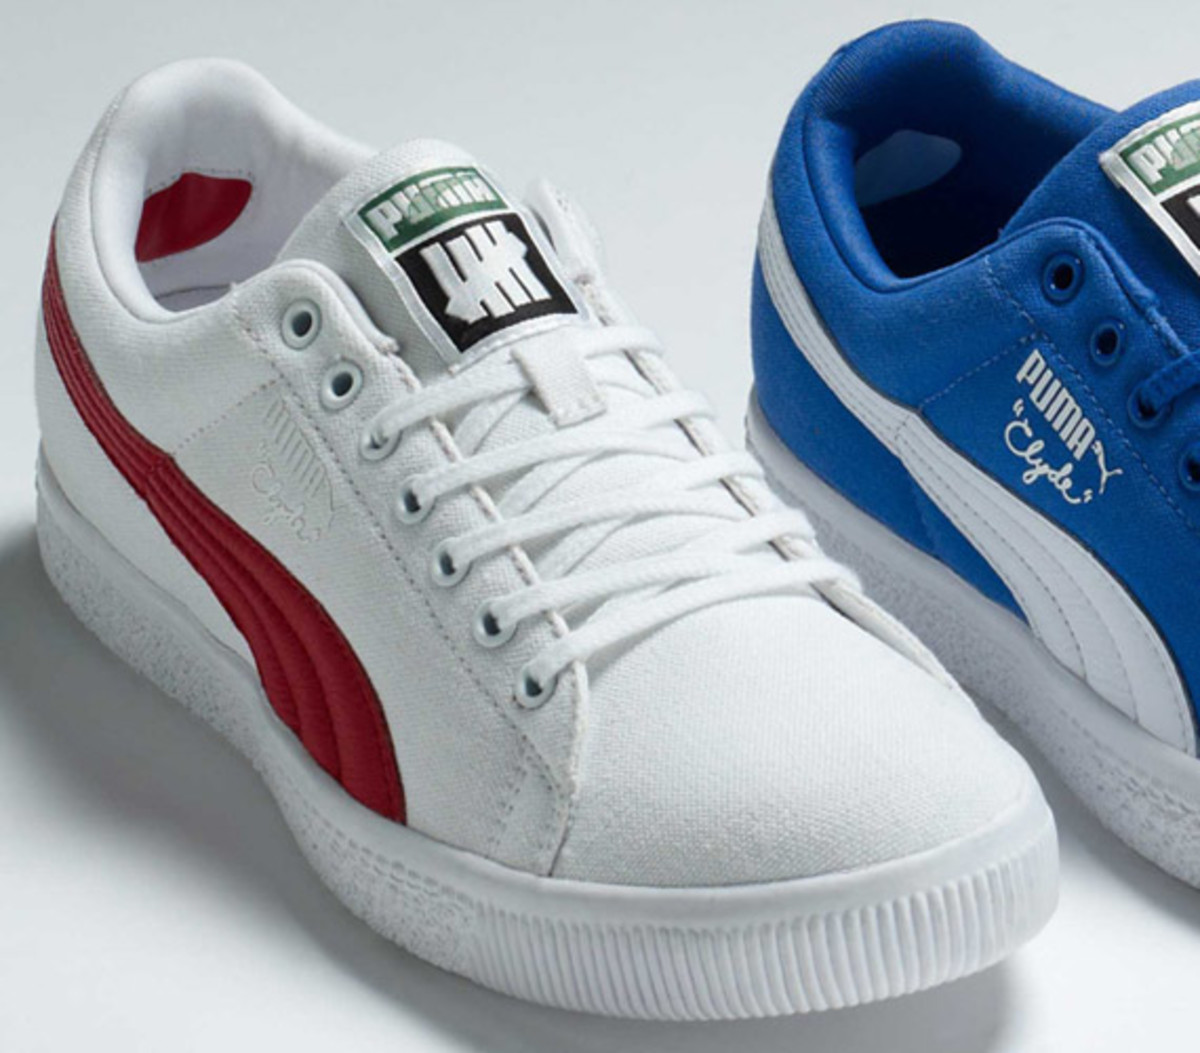 Undefeated-x-PUMA-Cali-Canvas-Clydes-02